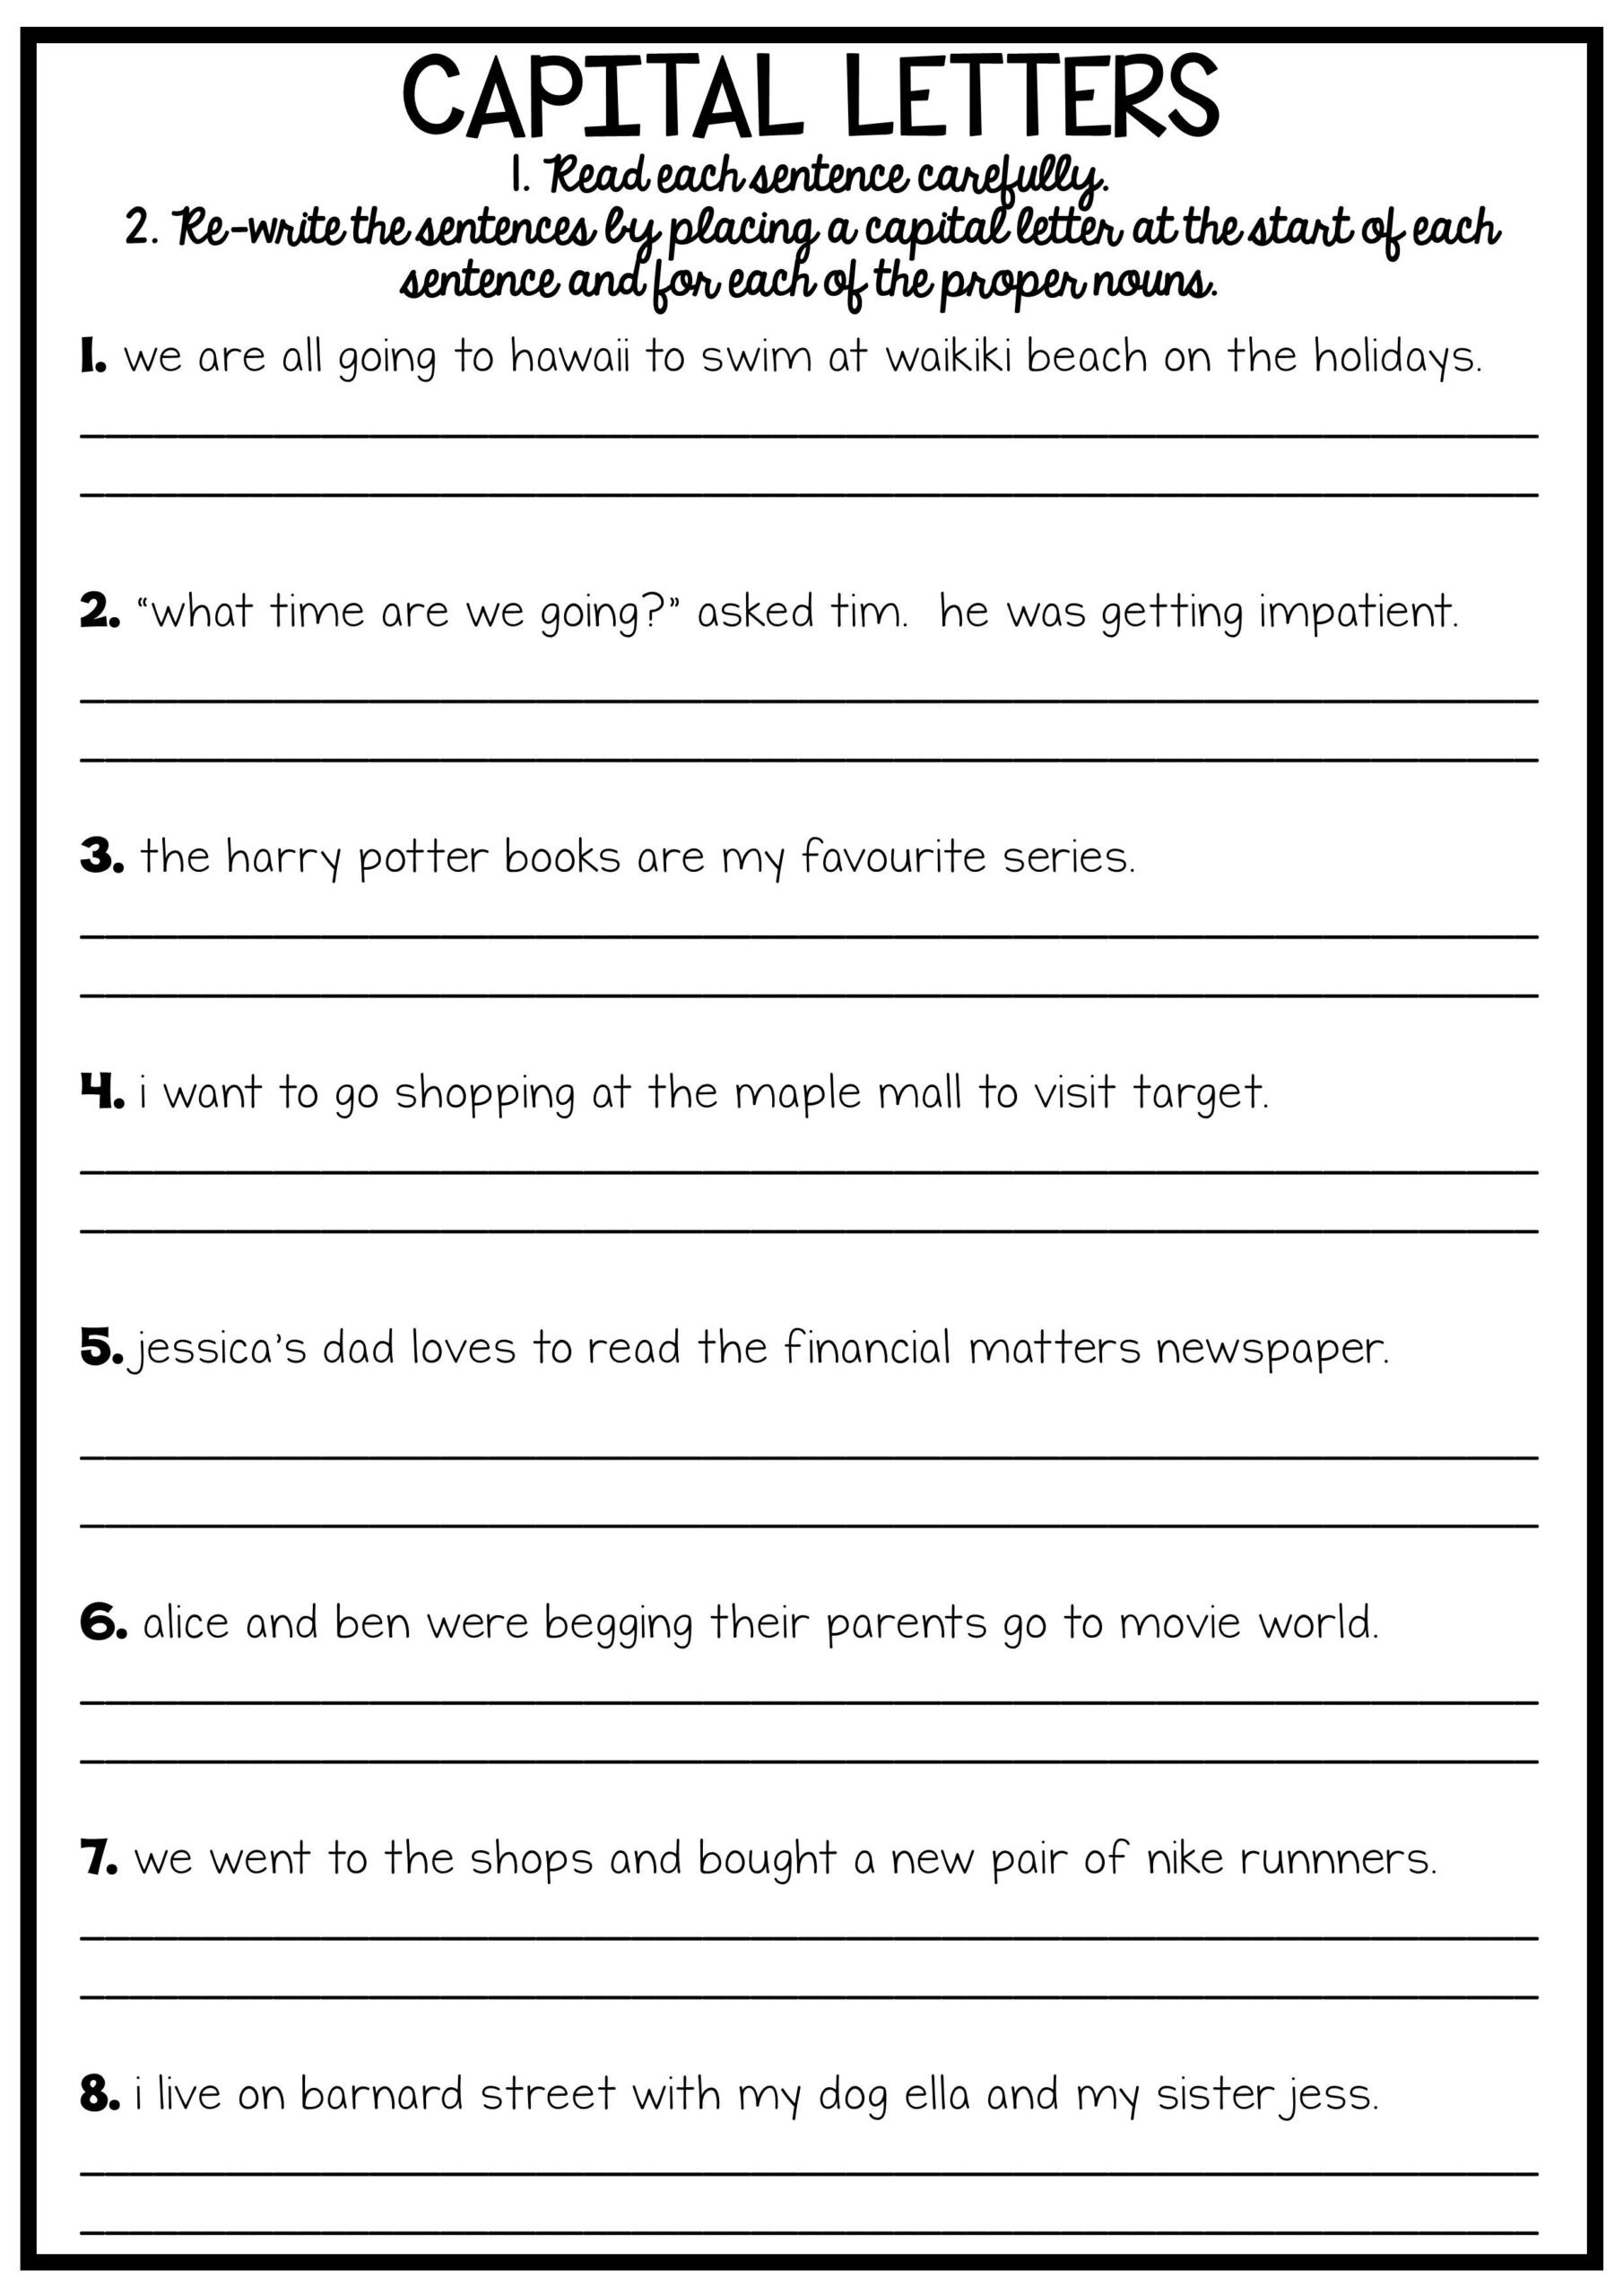 Editing Worksheet 2nd Grade Grade 2 Camouflage Animals Coloring Pages English Grammar